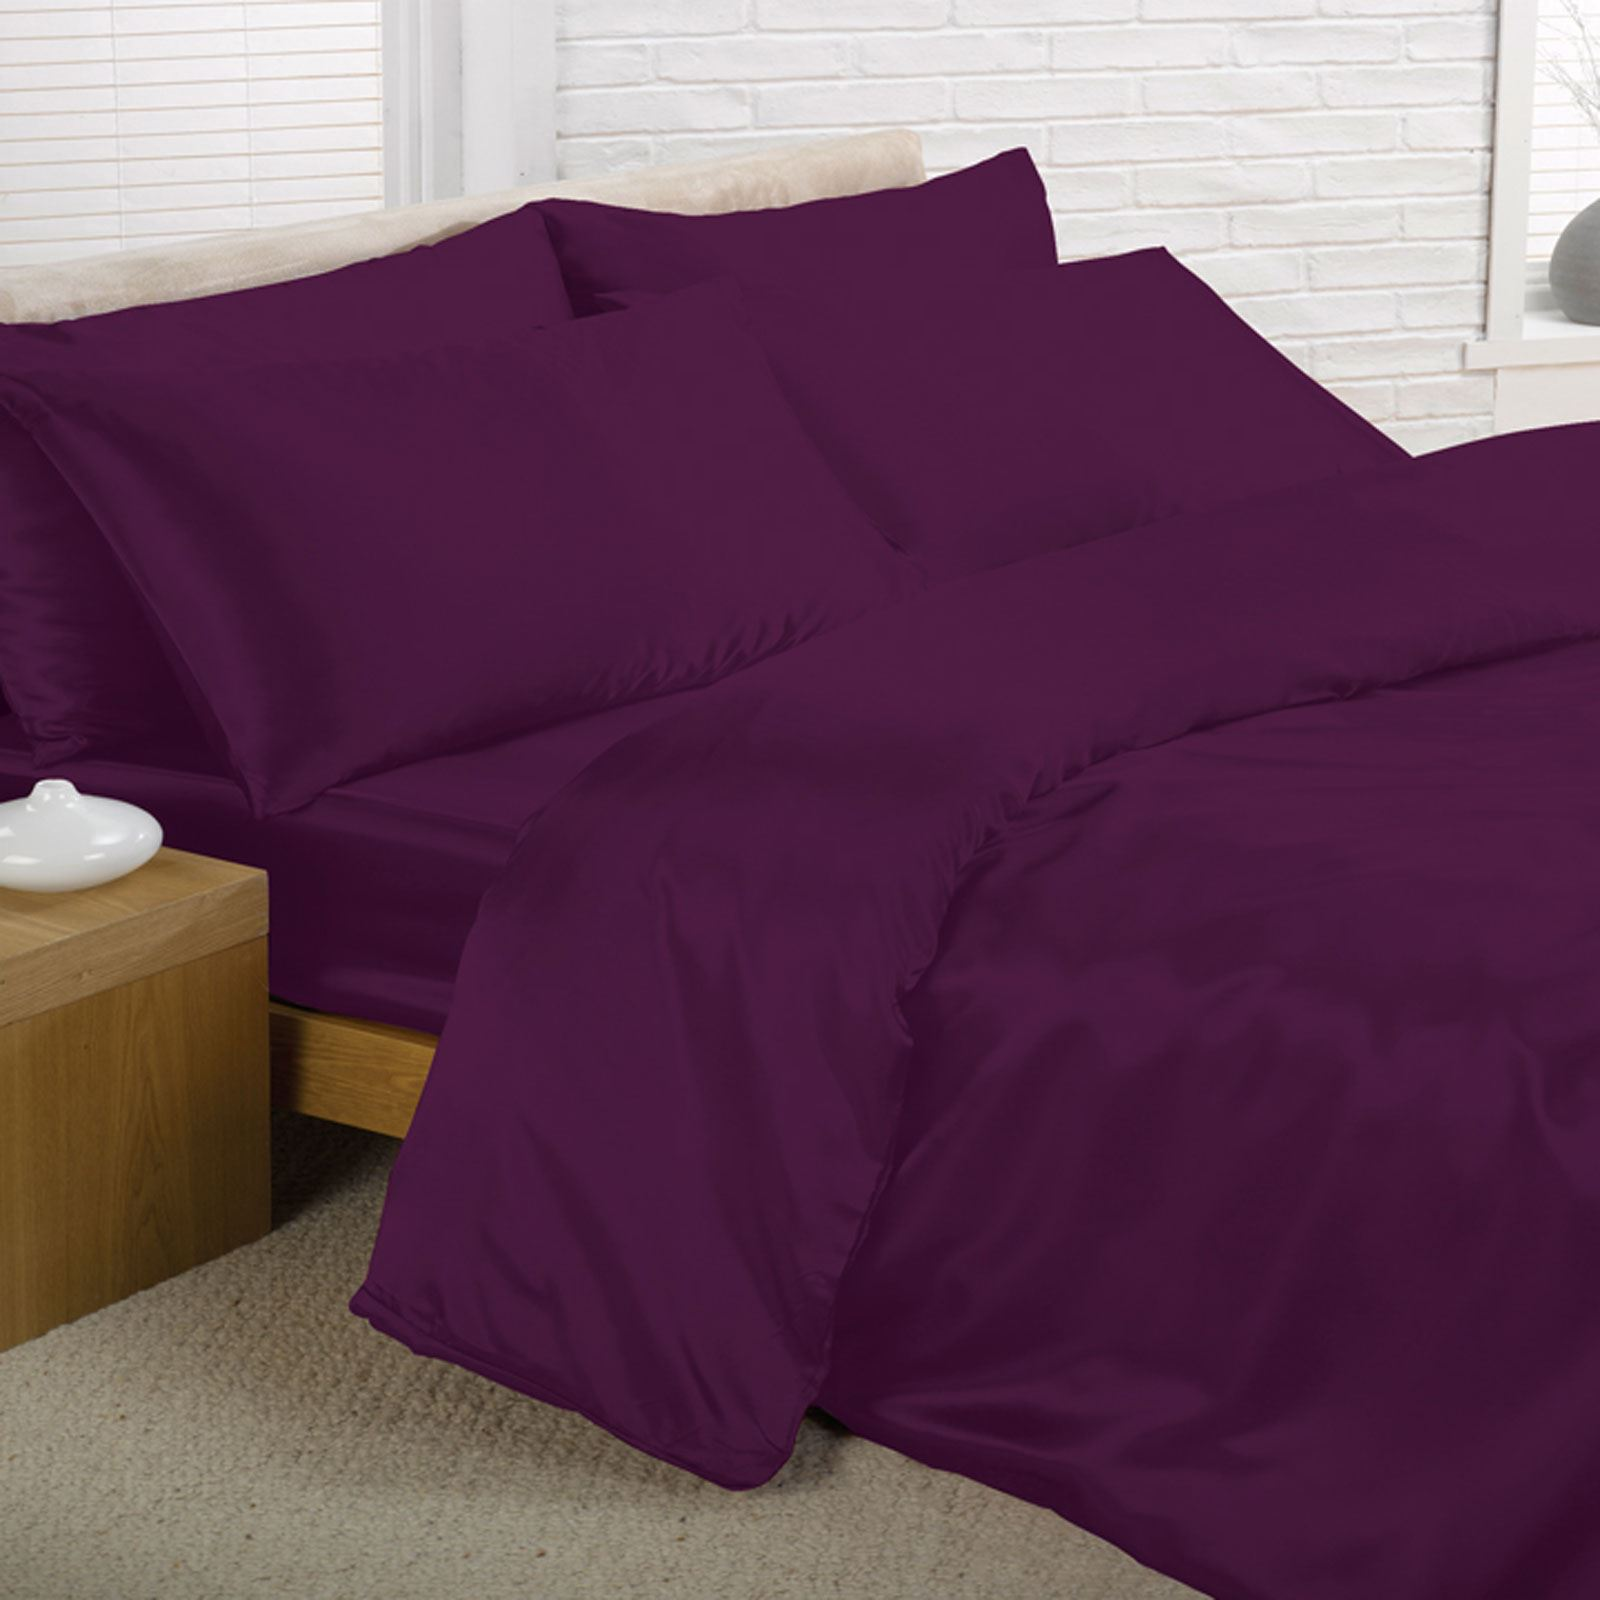 Satin bedding sets duvet cover fitted sheet for Housse couette satin